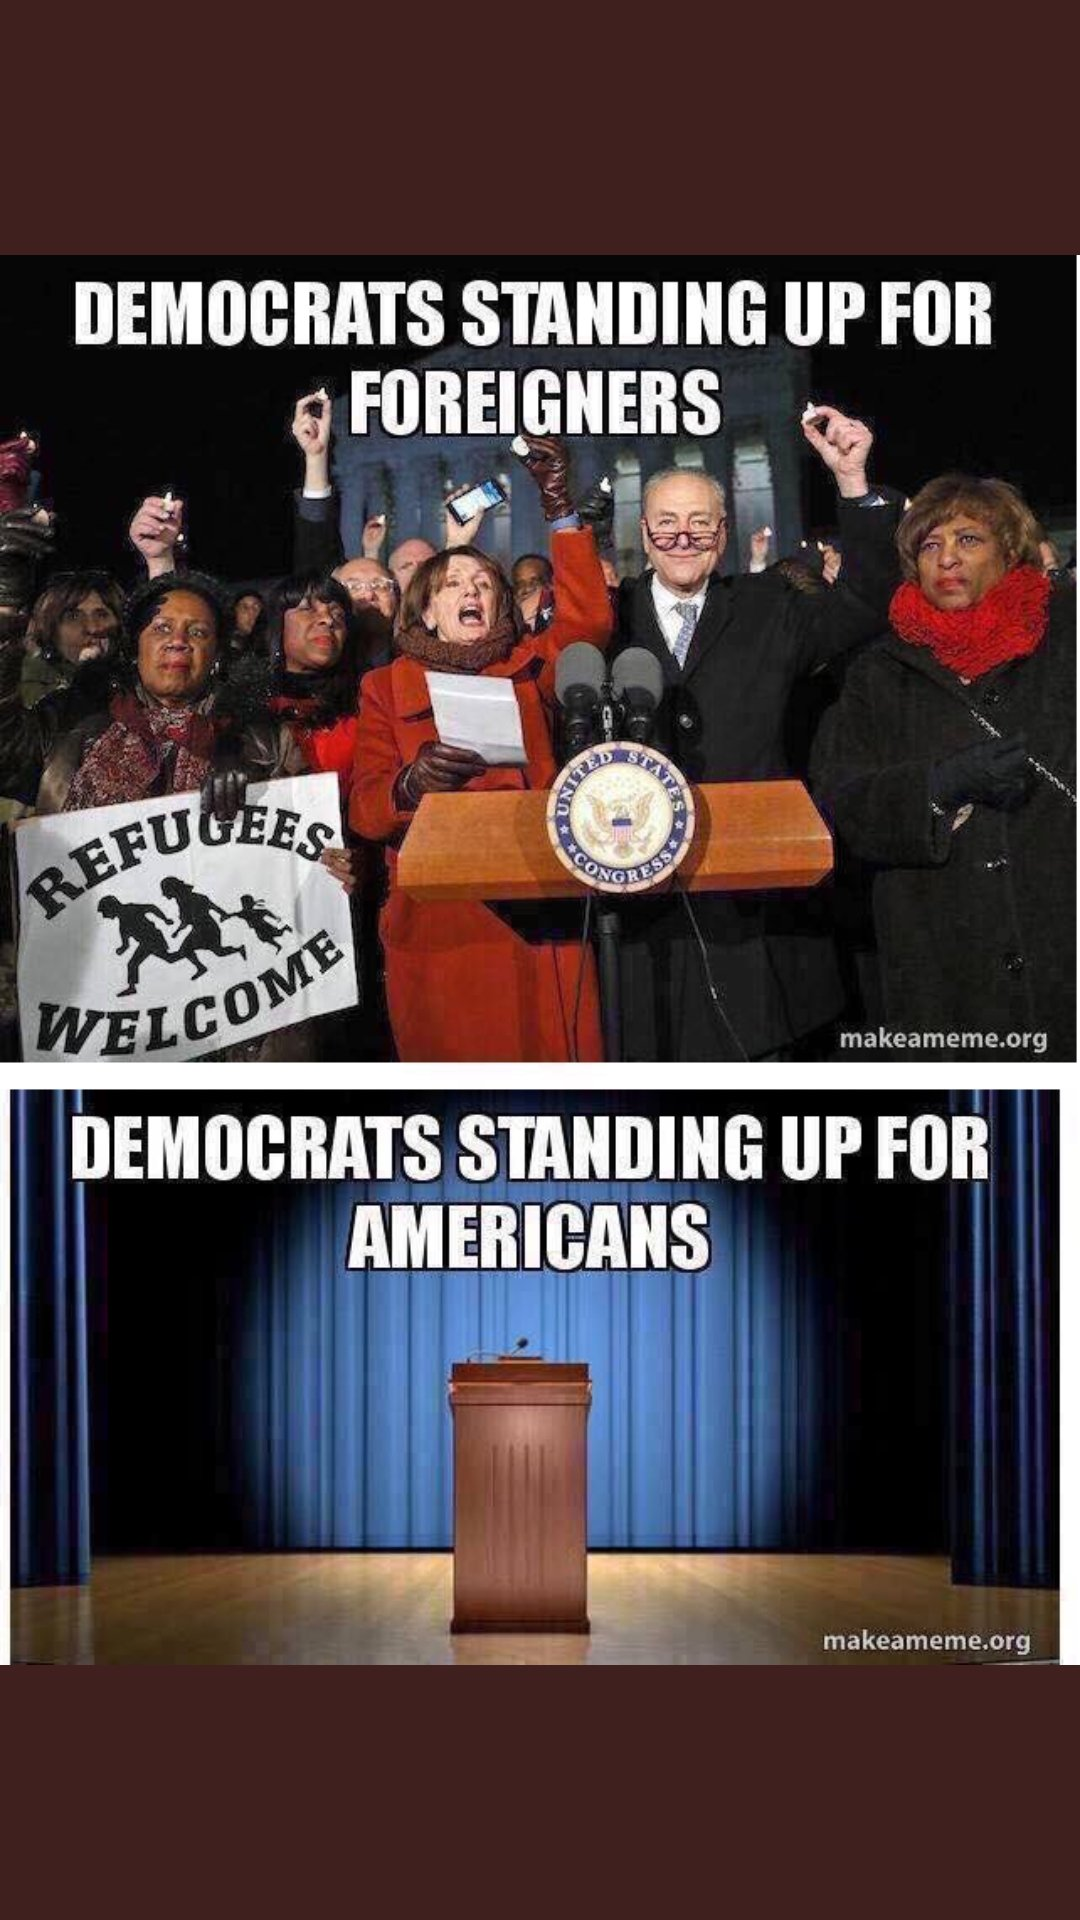 democrats standing up for america.jpg